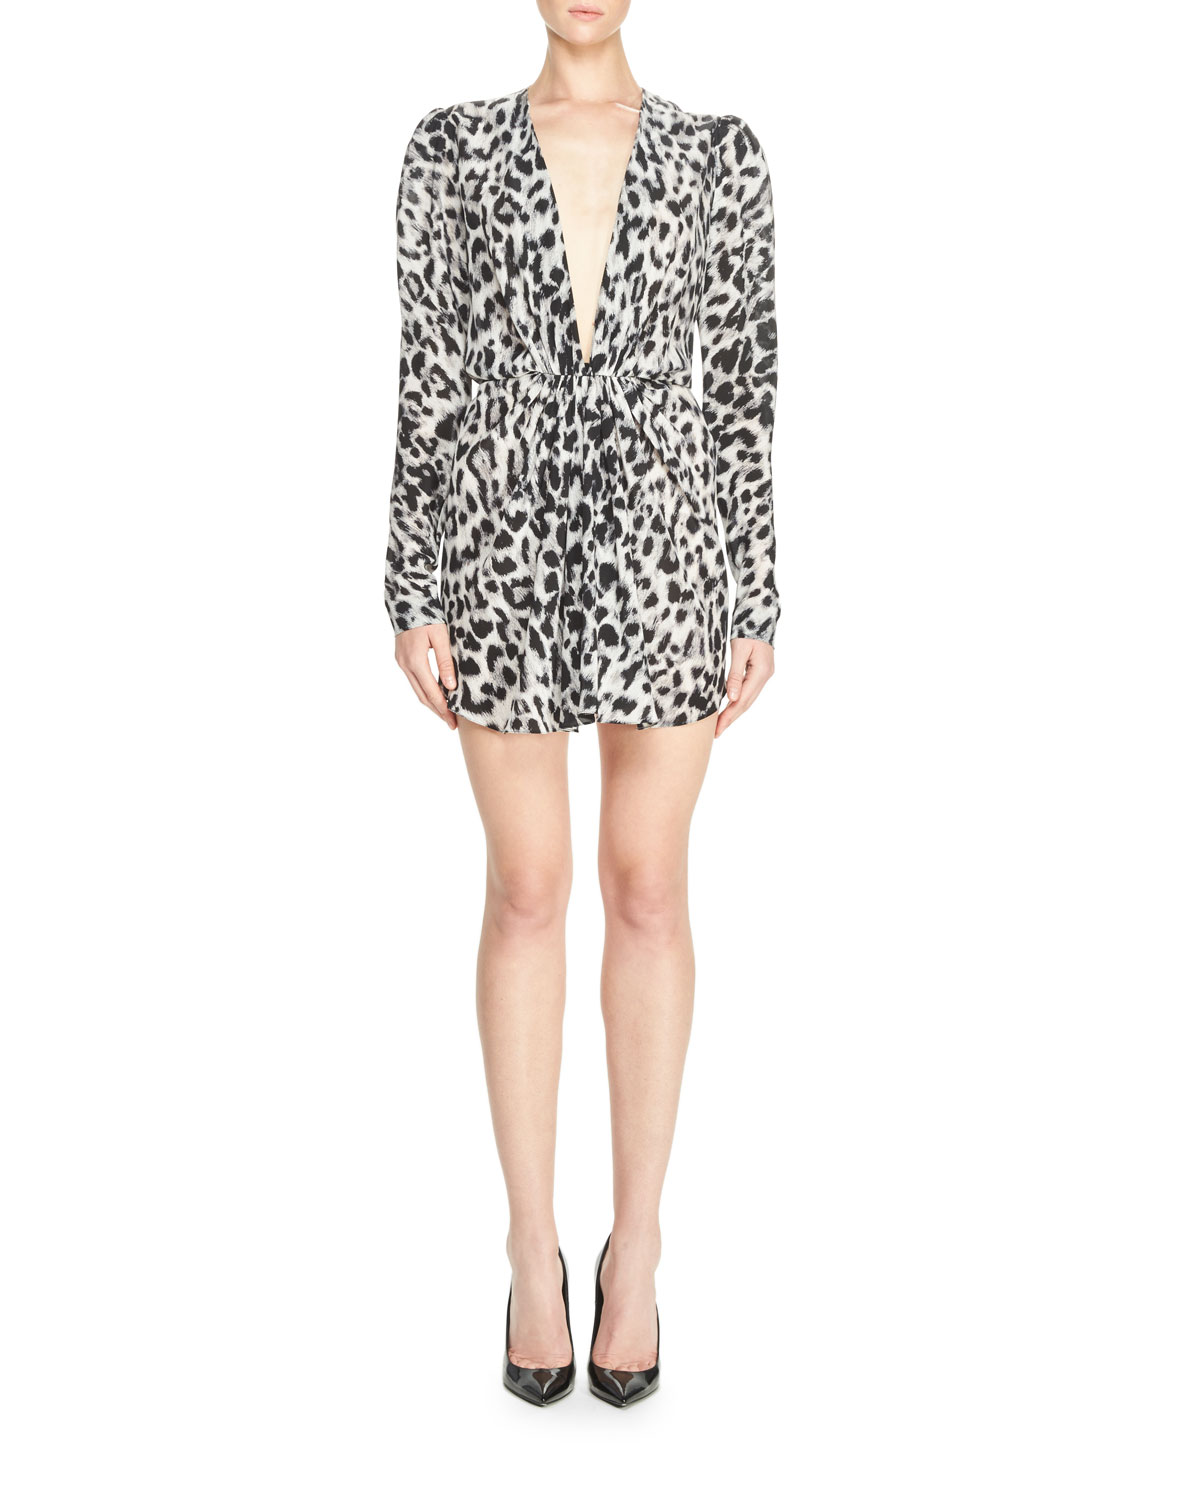 Leopard-Print Crepe de Chine Dress, Black/White